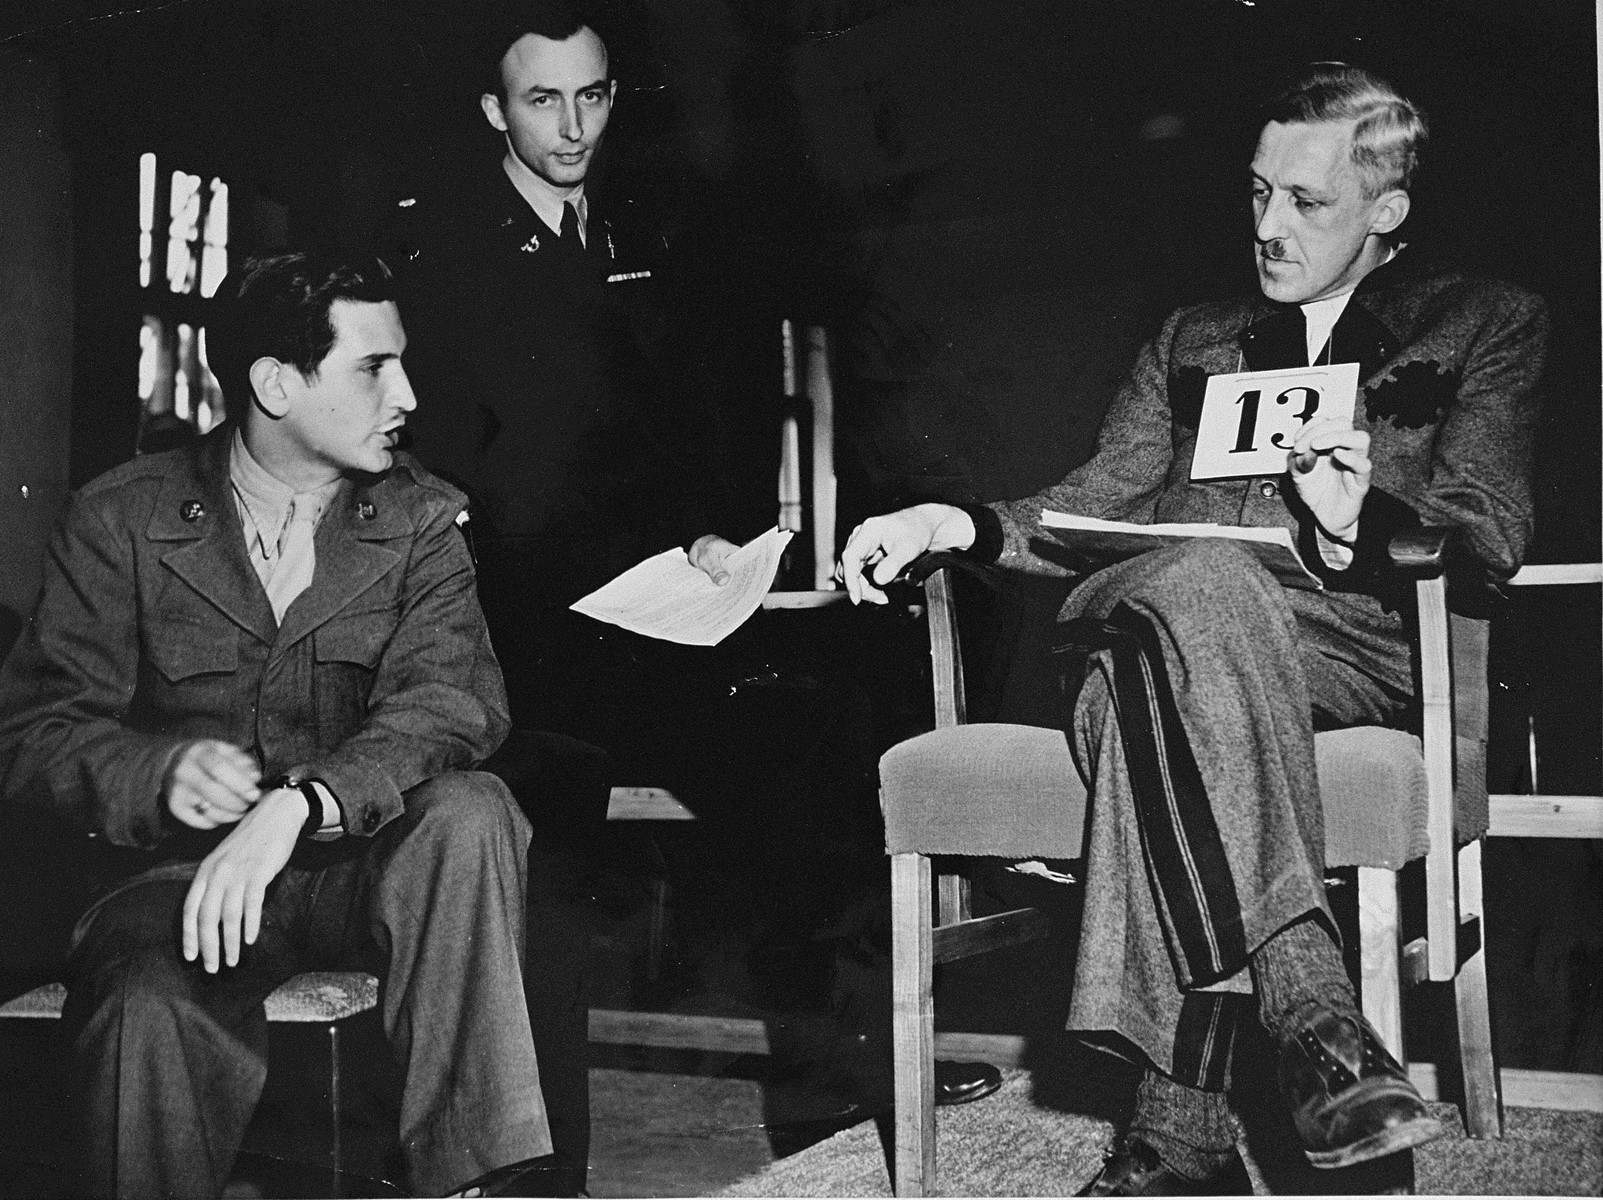 August Eigruber, former Gauleiter of Upper Austria, testifies at the trial of 61 former camp personnel and prisoners from Mauthausen.    Pictured in the middle is U.S. prosecutor William Denson.